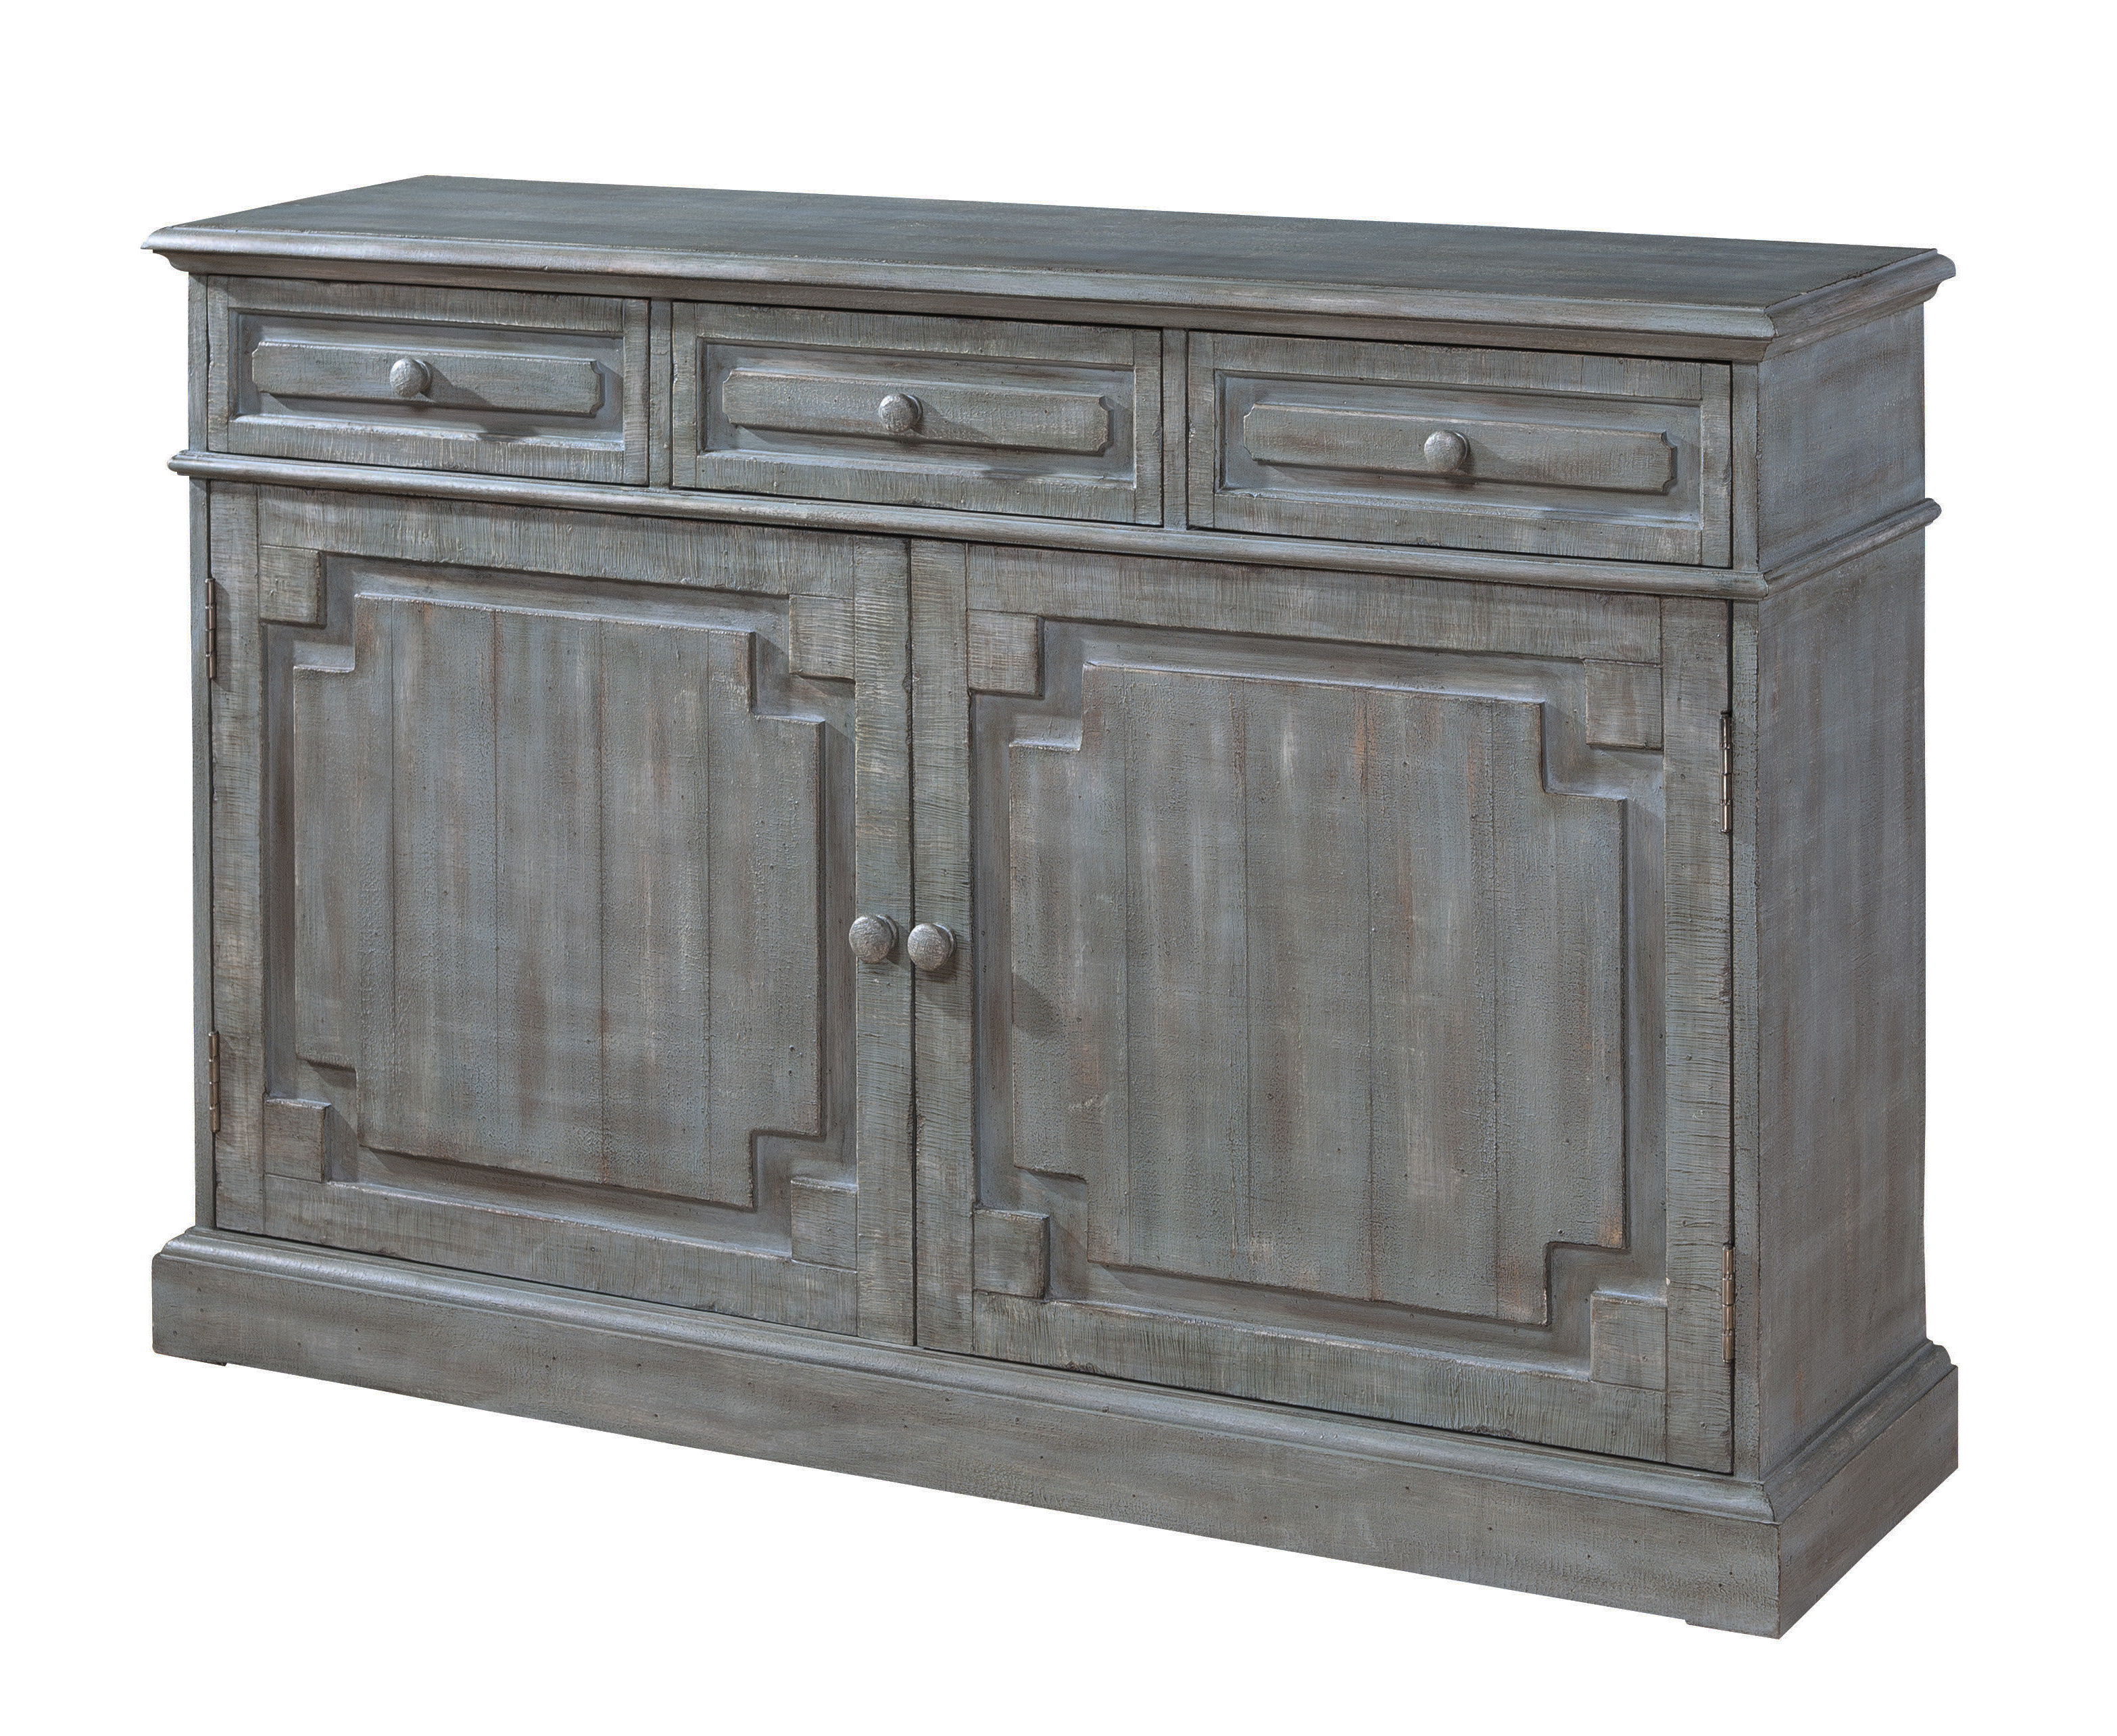 Mistana Adelbert Credenza Pertaining To Most Up To Date Caines Credenzas (View 8 of 20)